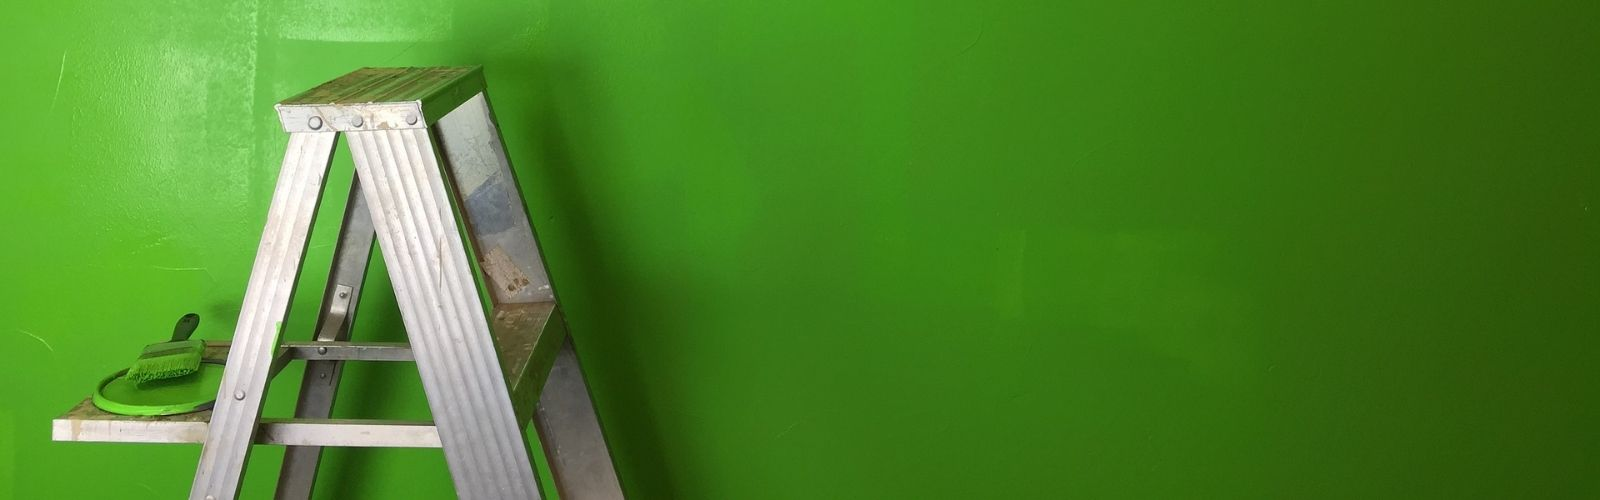 a ladder in front of a green wall